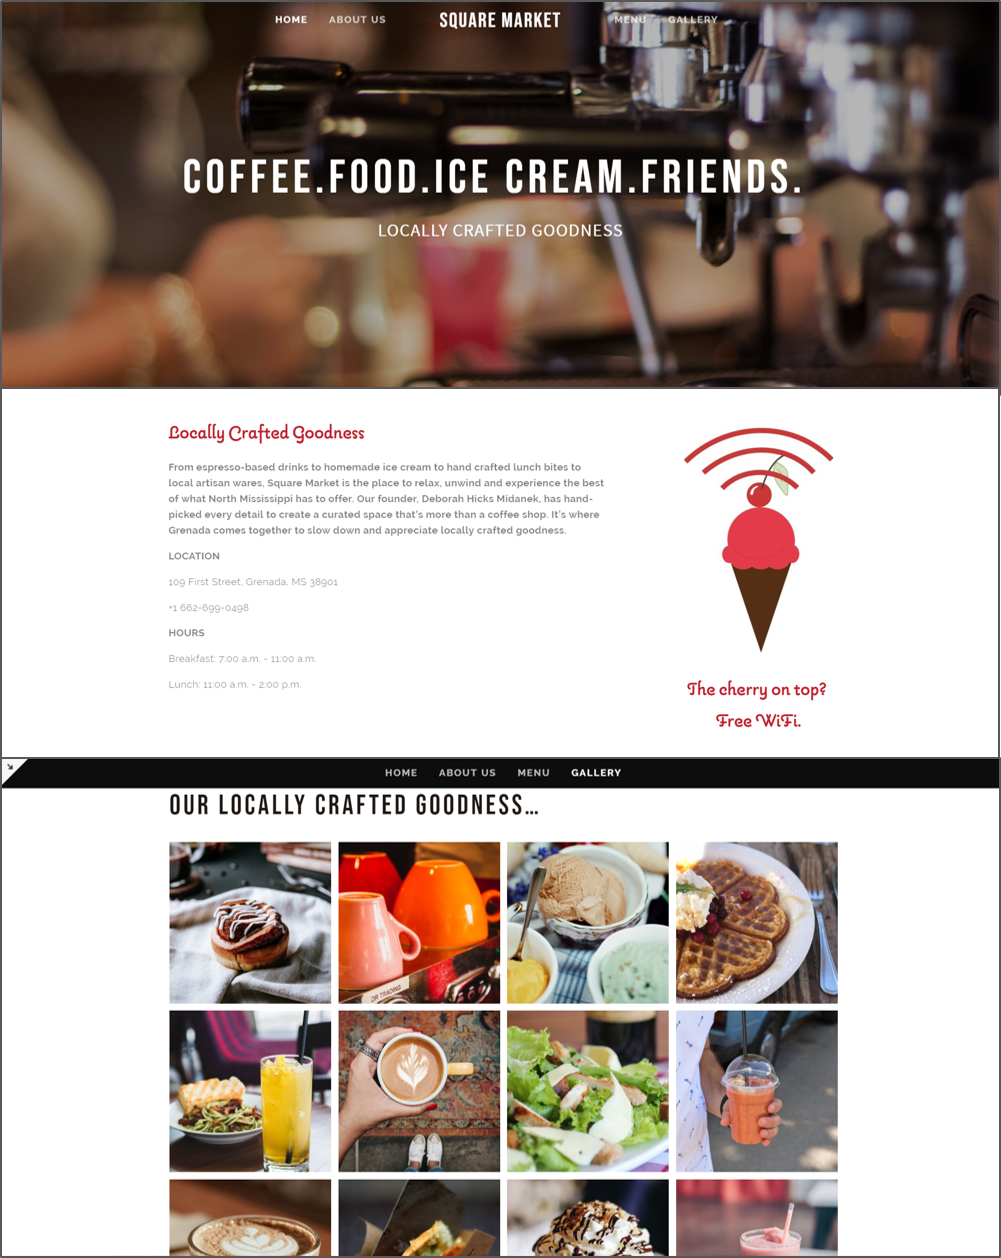 Tasteful Presence - What's sweeter than ice cream? A local coffee shop, destined to be a gathering place for local artisans and foodie entrepreneurs. With an open mind to where Square Market's local artisan market could go, we designed a logo, icon set and website on a Locally Crafted Goodness concept. Because, we knew one thing for sure. Whatever food and art landed at Square Market, it would be locally crafted and it would be good!SquareMarketGrenada.com